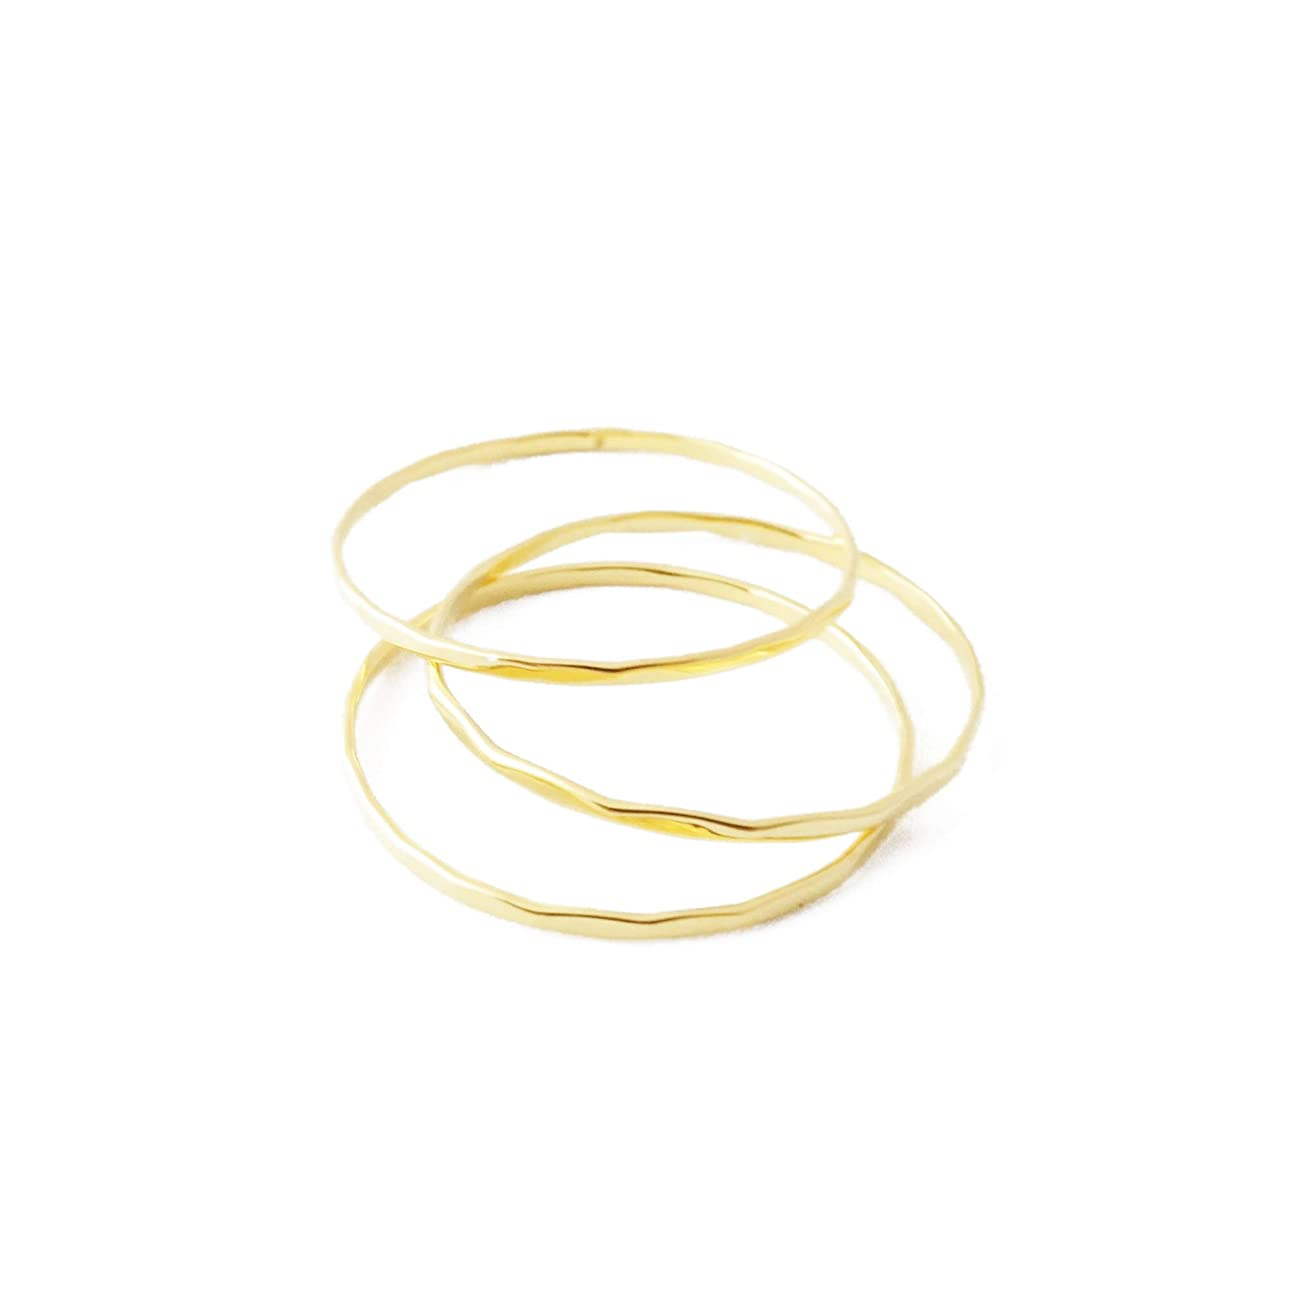 HONEYCAT Super Skinny Hammered or Smooth Stacking Rings Trio Set in Gold, Rose Gold, or Silver | Minimalist, Delicate Jewelry